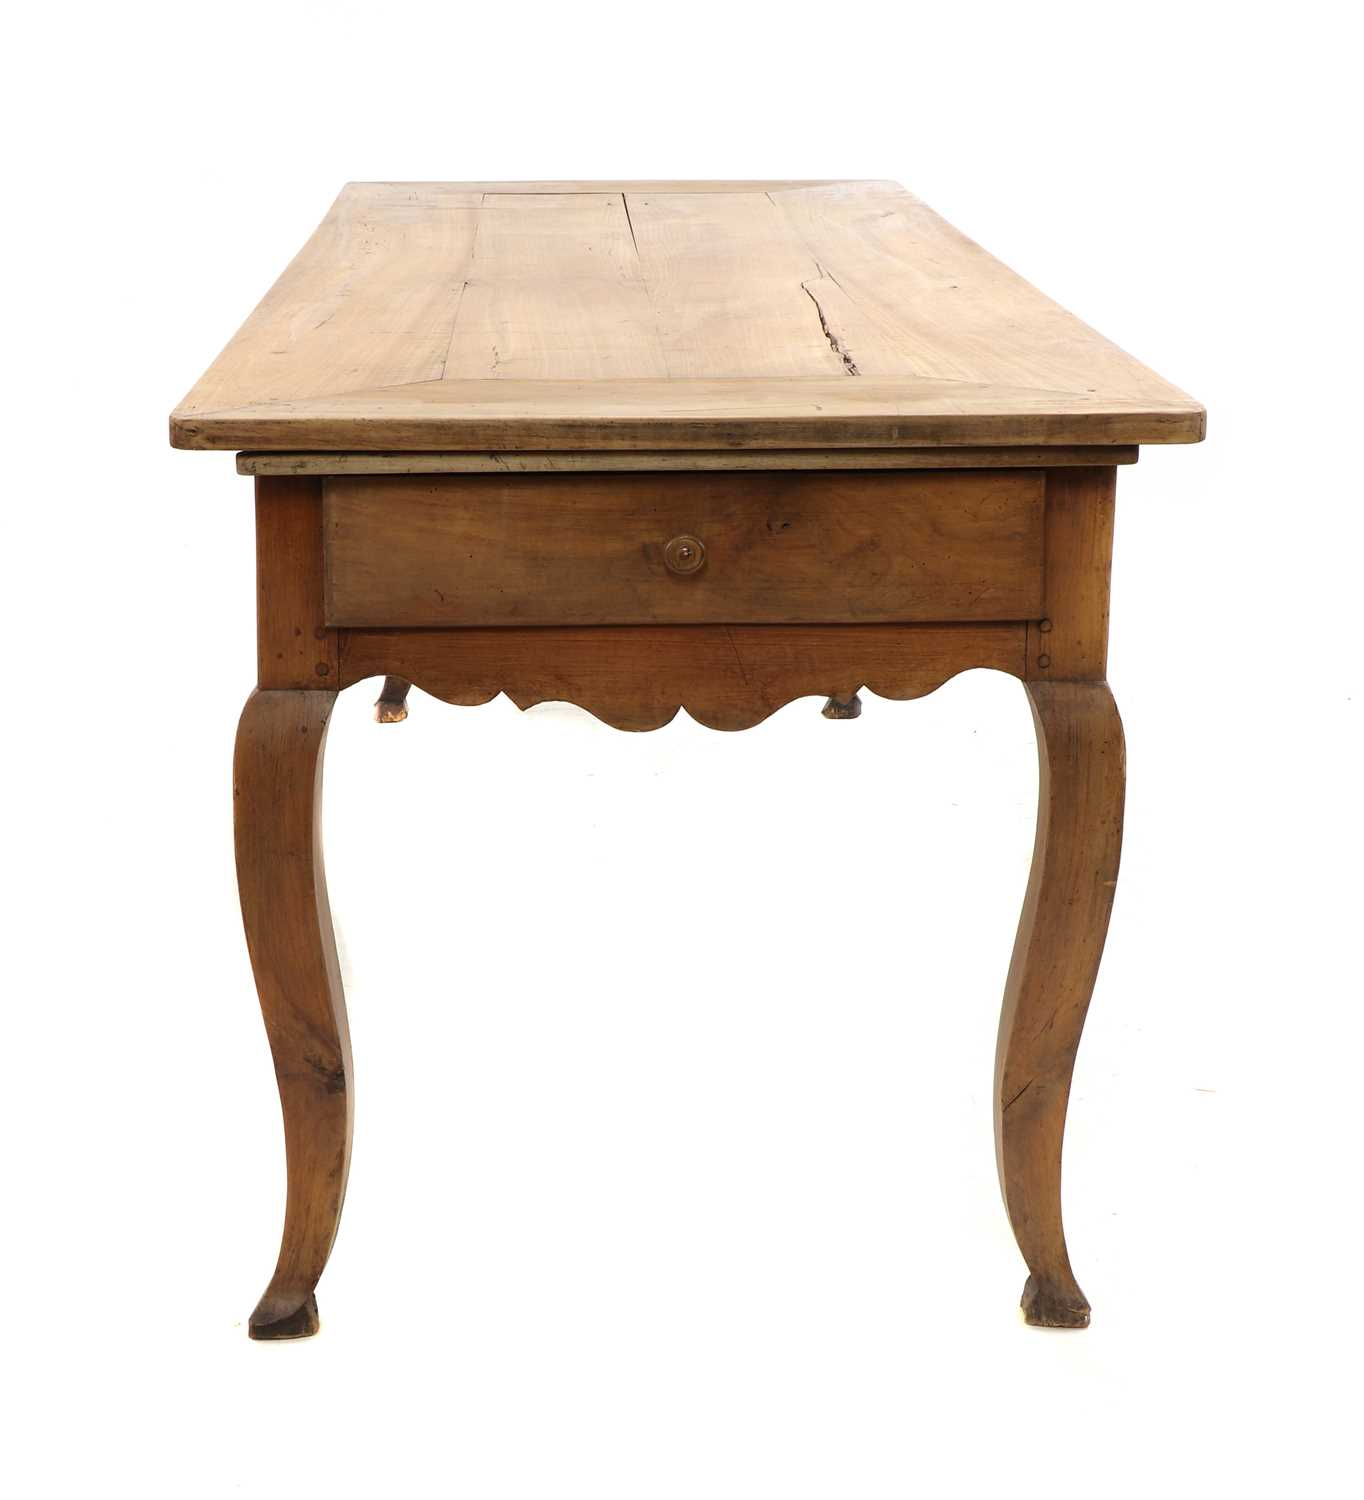 A French provincial sycamore kitchen table, - Image 5 of 10